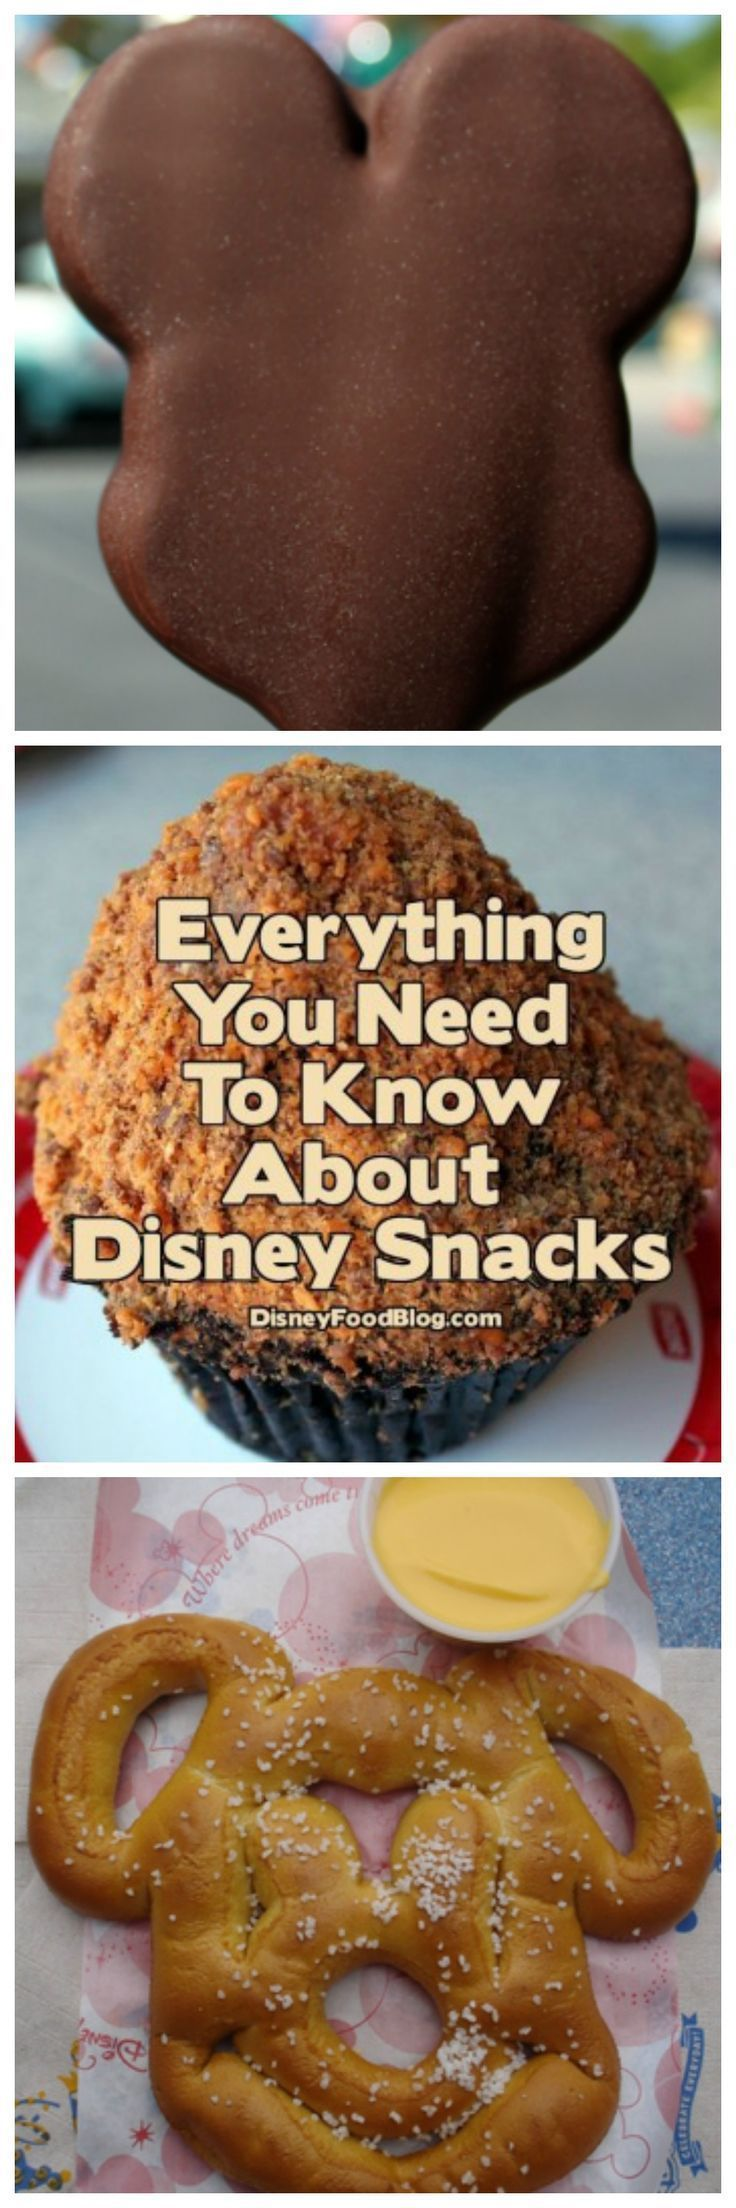 Everything But The Kitchen Sink Disney 592 best theme park food images on pinterest | disney food, disney